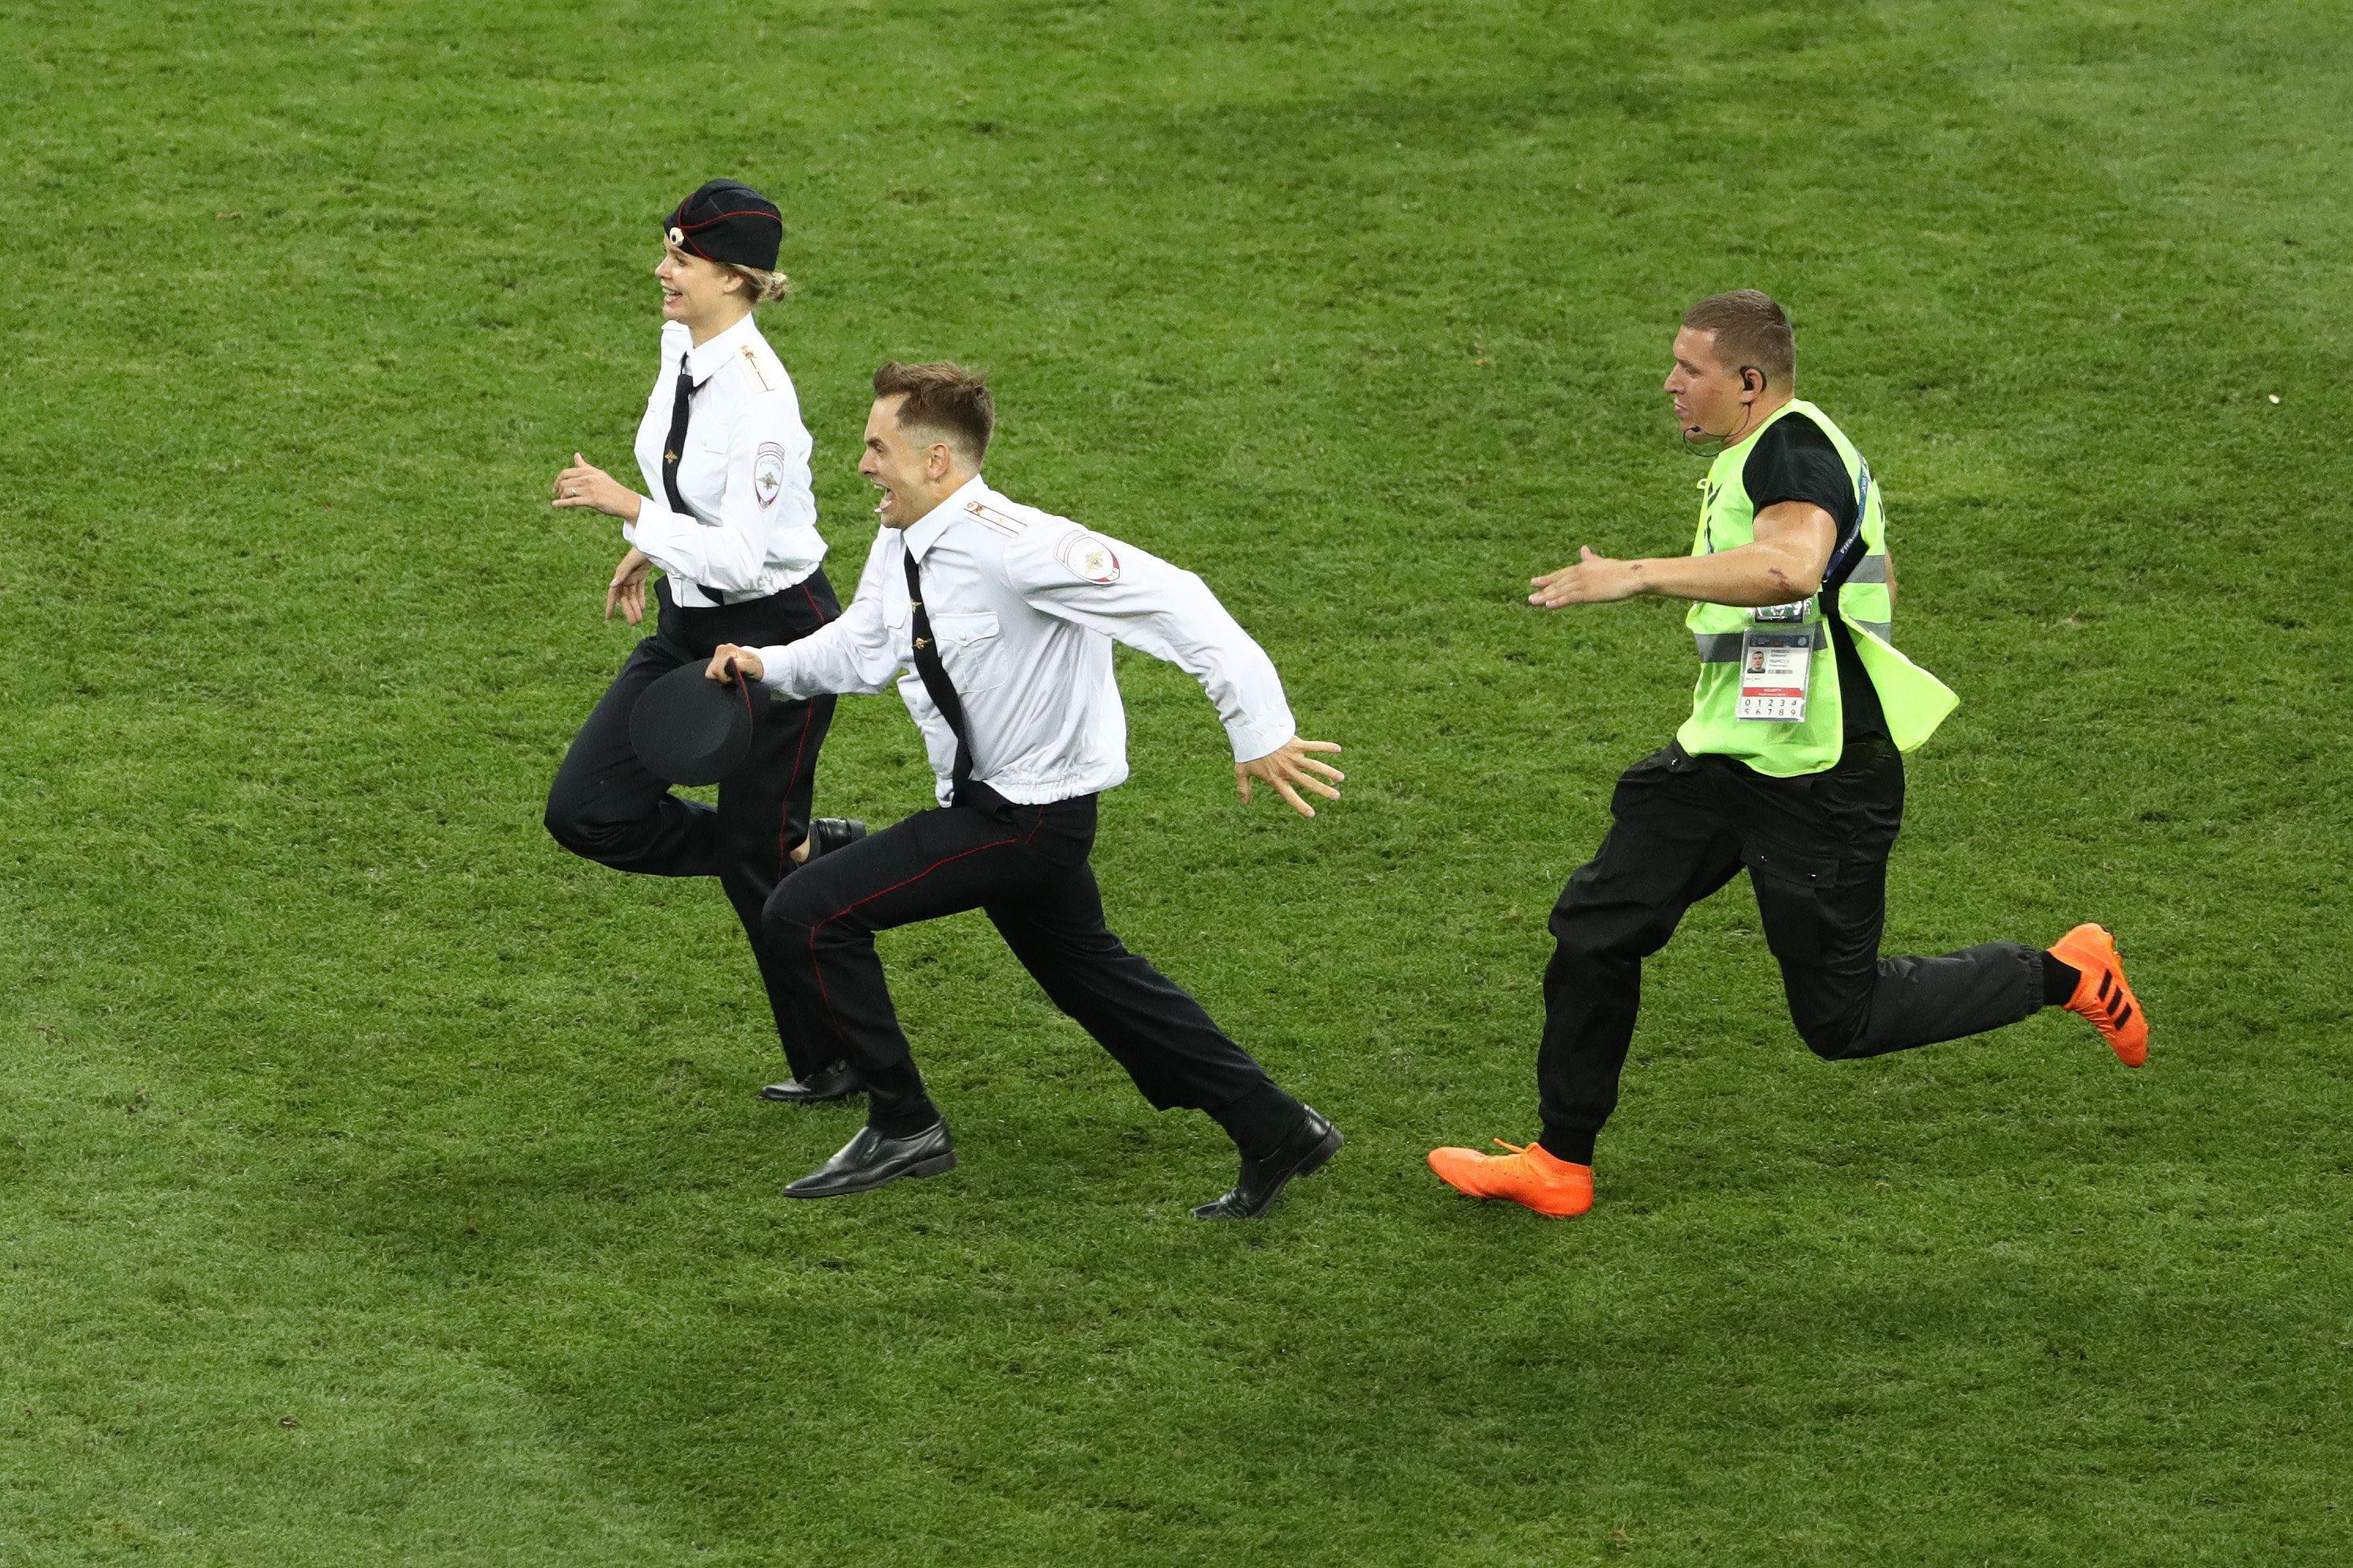 MOSCOW, RUSSIA - JULY 15:  Stewards run after a pitch invader during the 2018 FIFA World Cup Final between France and Croatia at Luzhniki Stadium on July 15, 2018 in Moscow, Russia.  (Photo by Robert Cianflone - FIFA/FIFA via Getty Images)